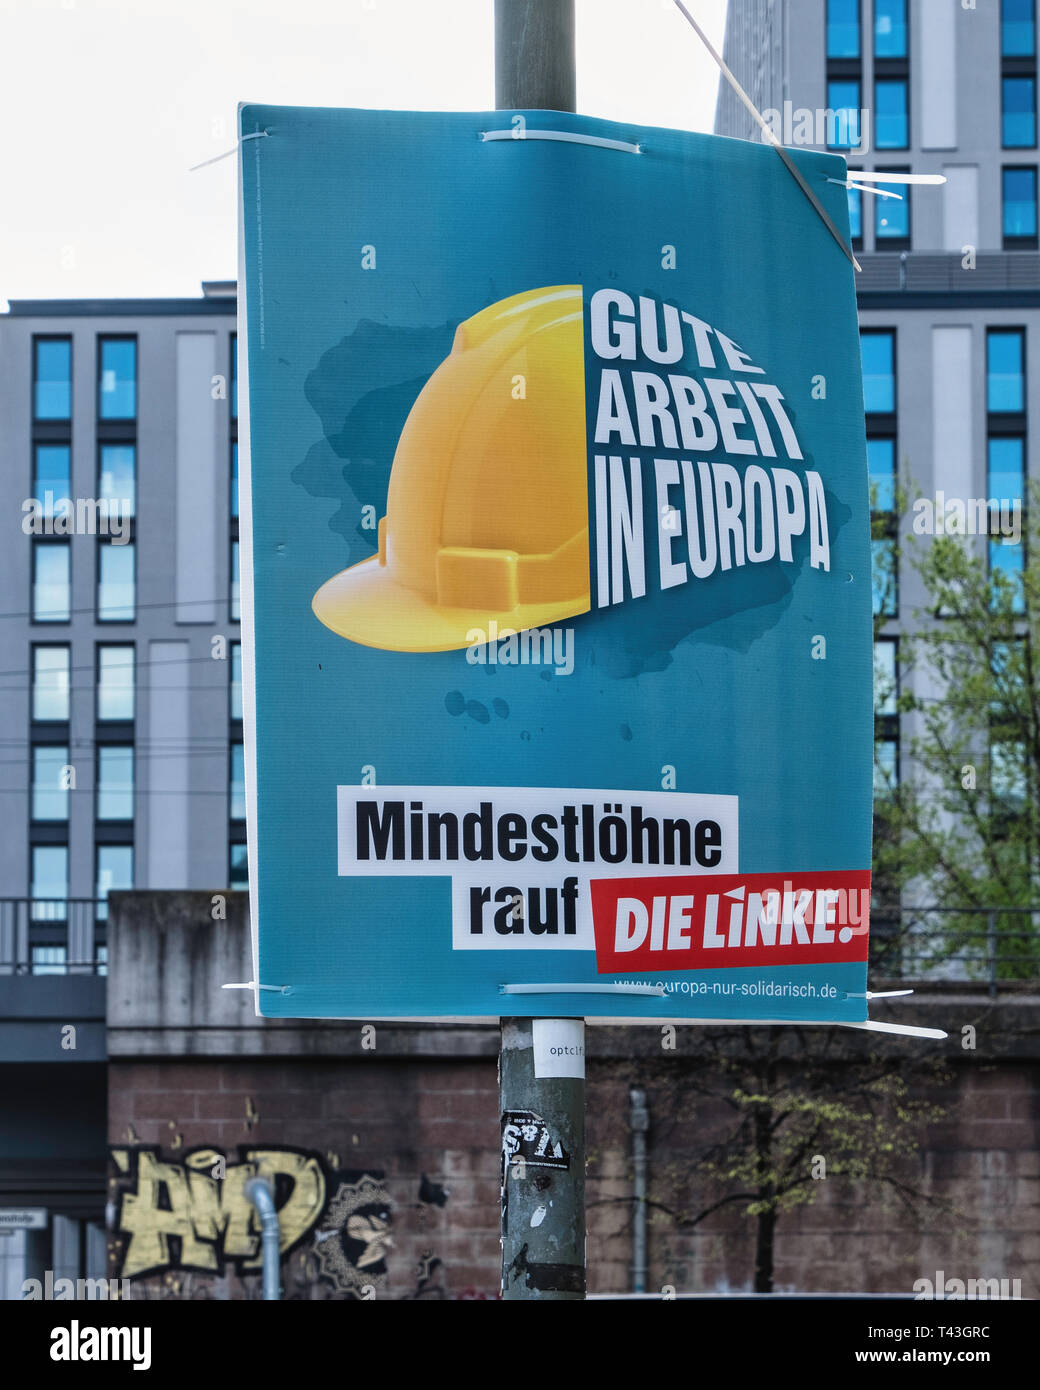 https www alamy com berlin election poster european elections 23 26 may 2019 die linke political party poster calls for minimum wage image243482832 html